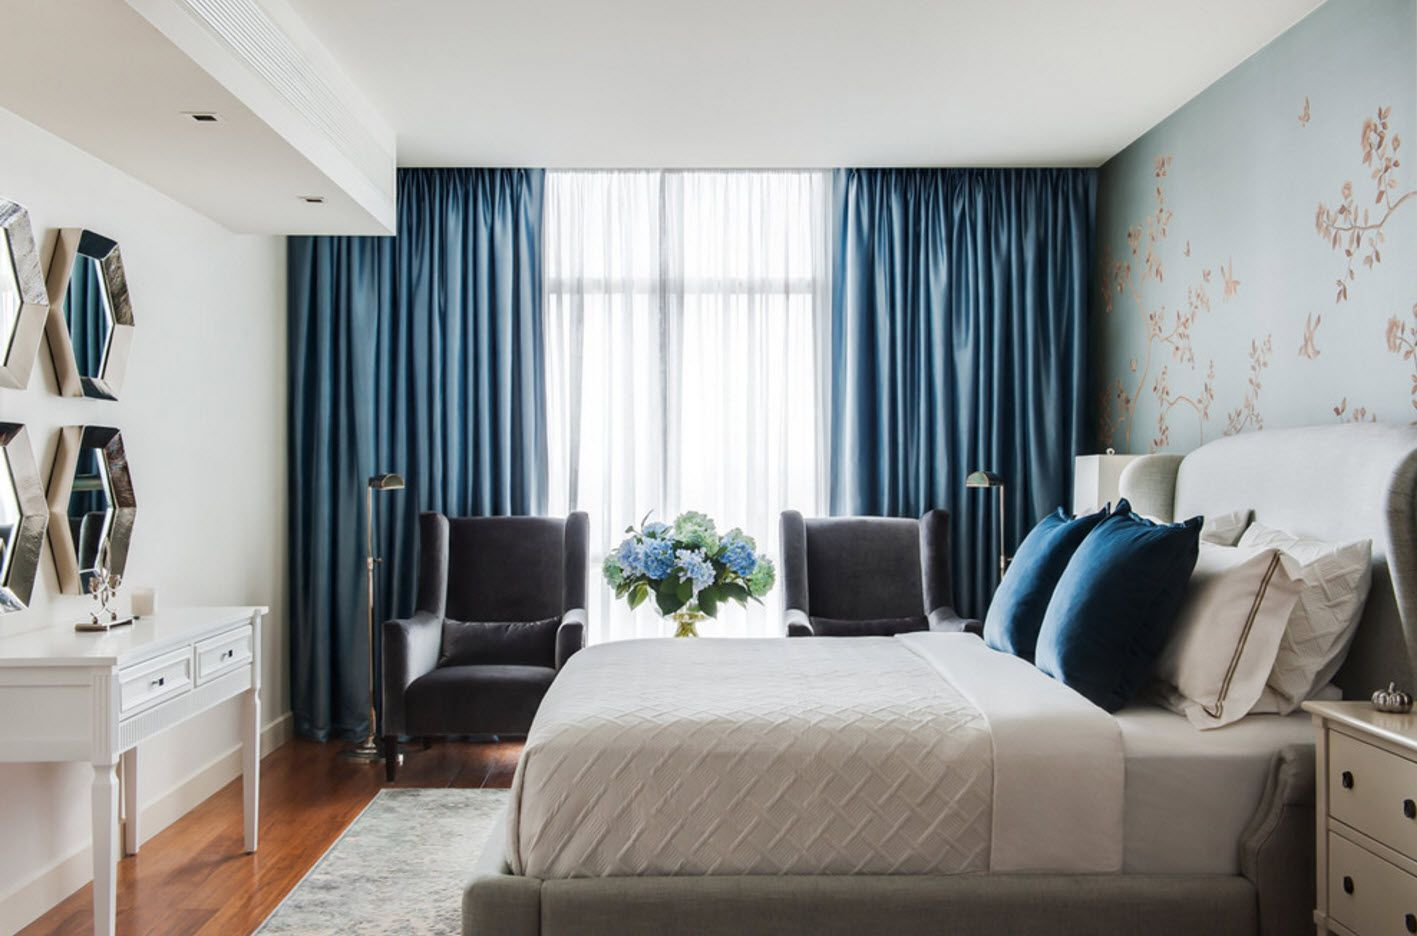 Spectacular silk blue draperies with hiddfen carnice; platform bed and с couple of armchairs